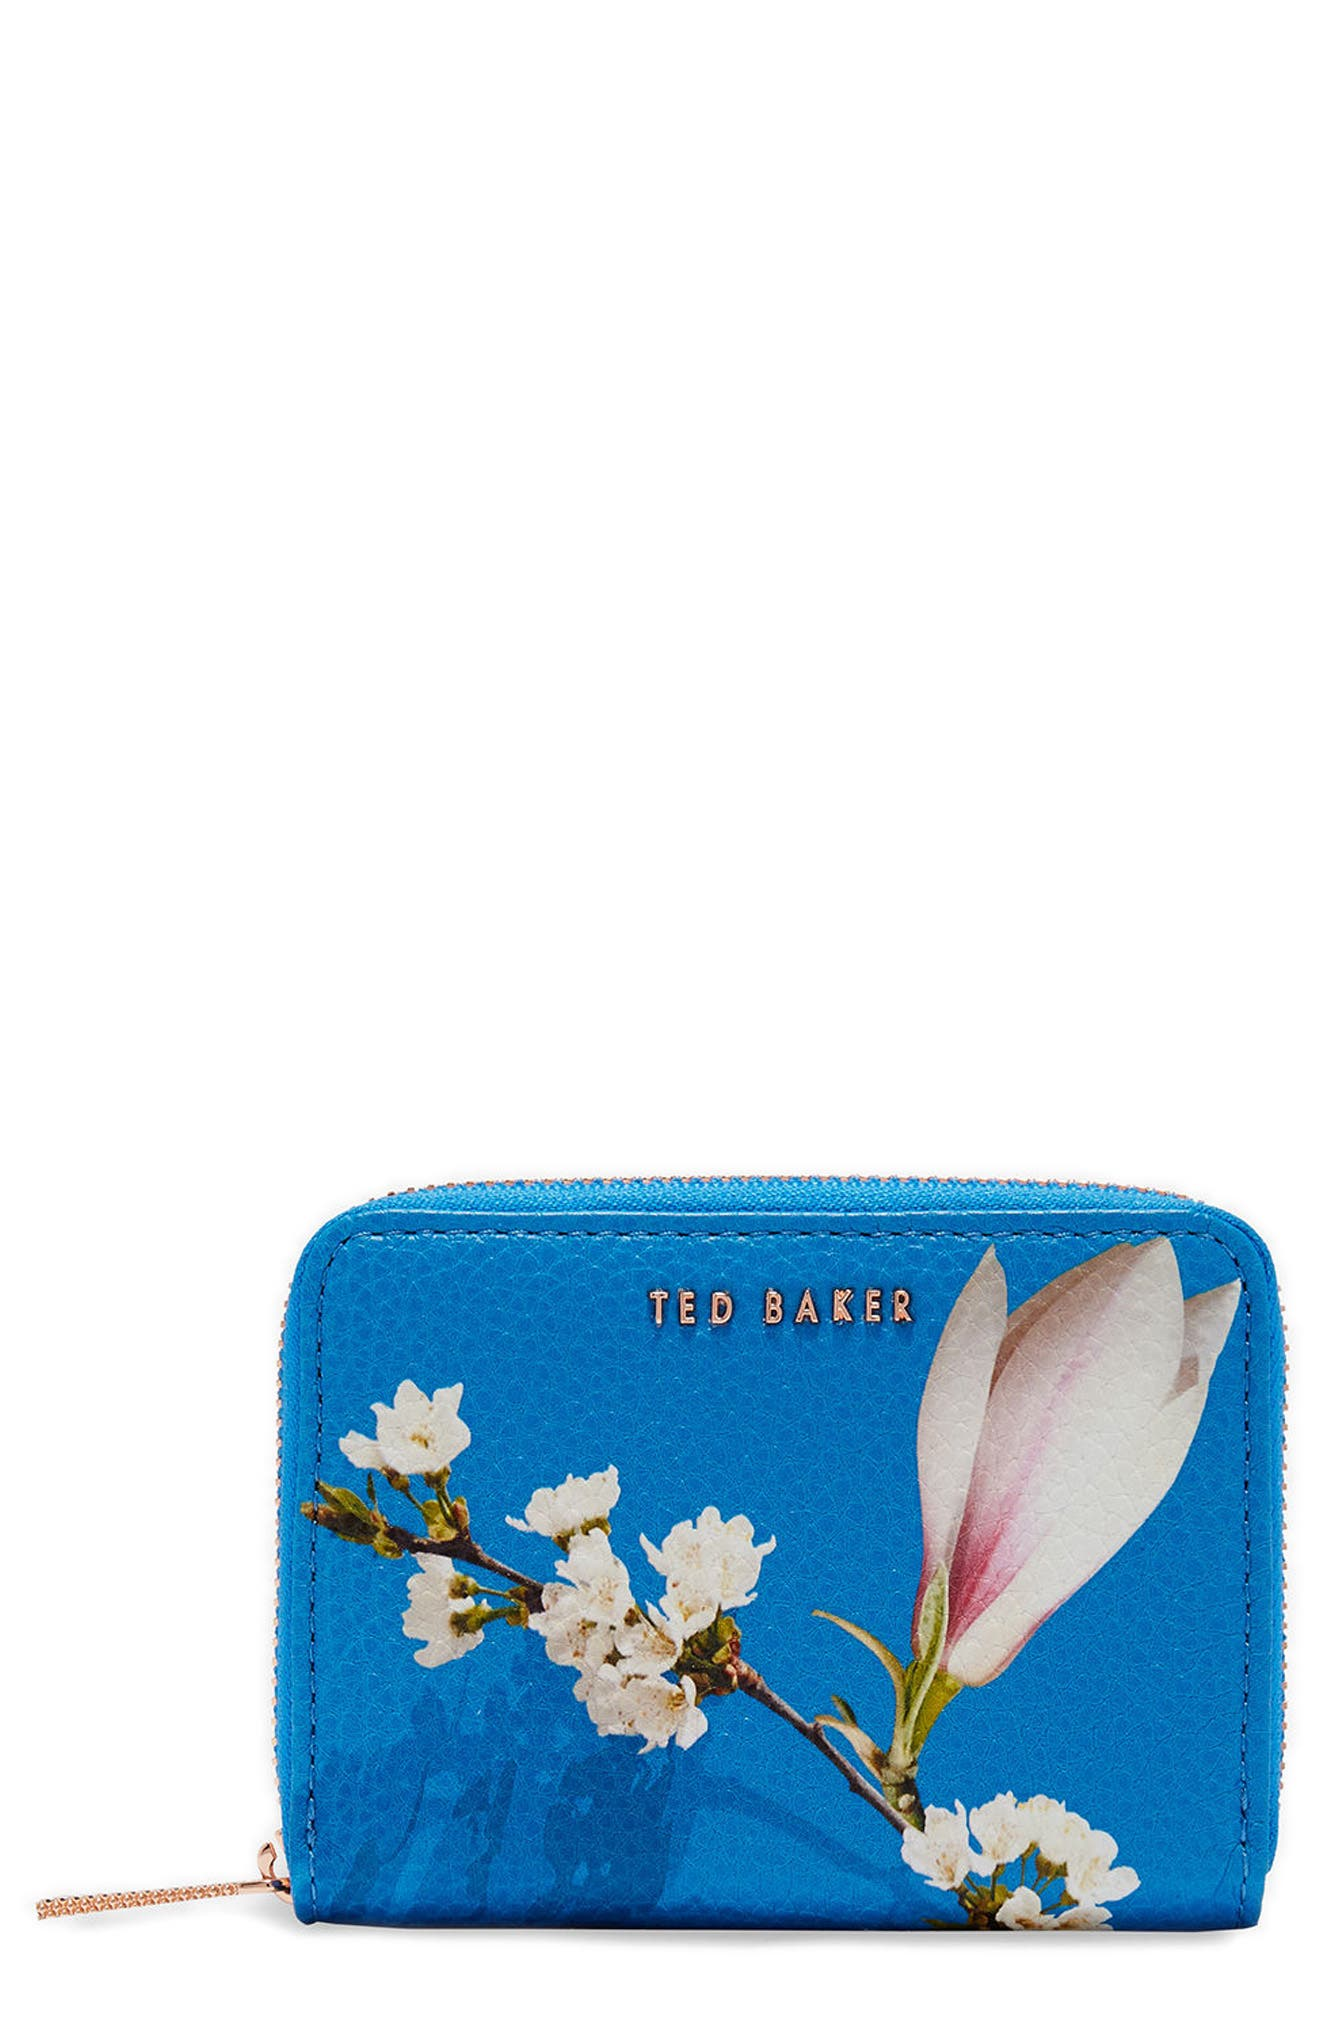 Corri Harmony Print Leather Zip Coin Purse,                             Main thumbnail 1, color,                             Bright Blue